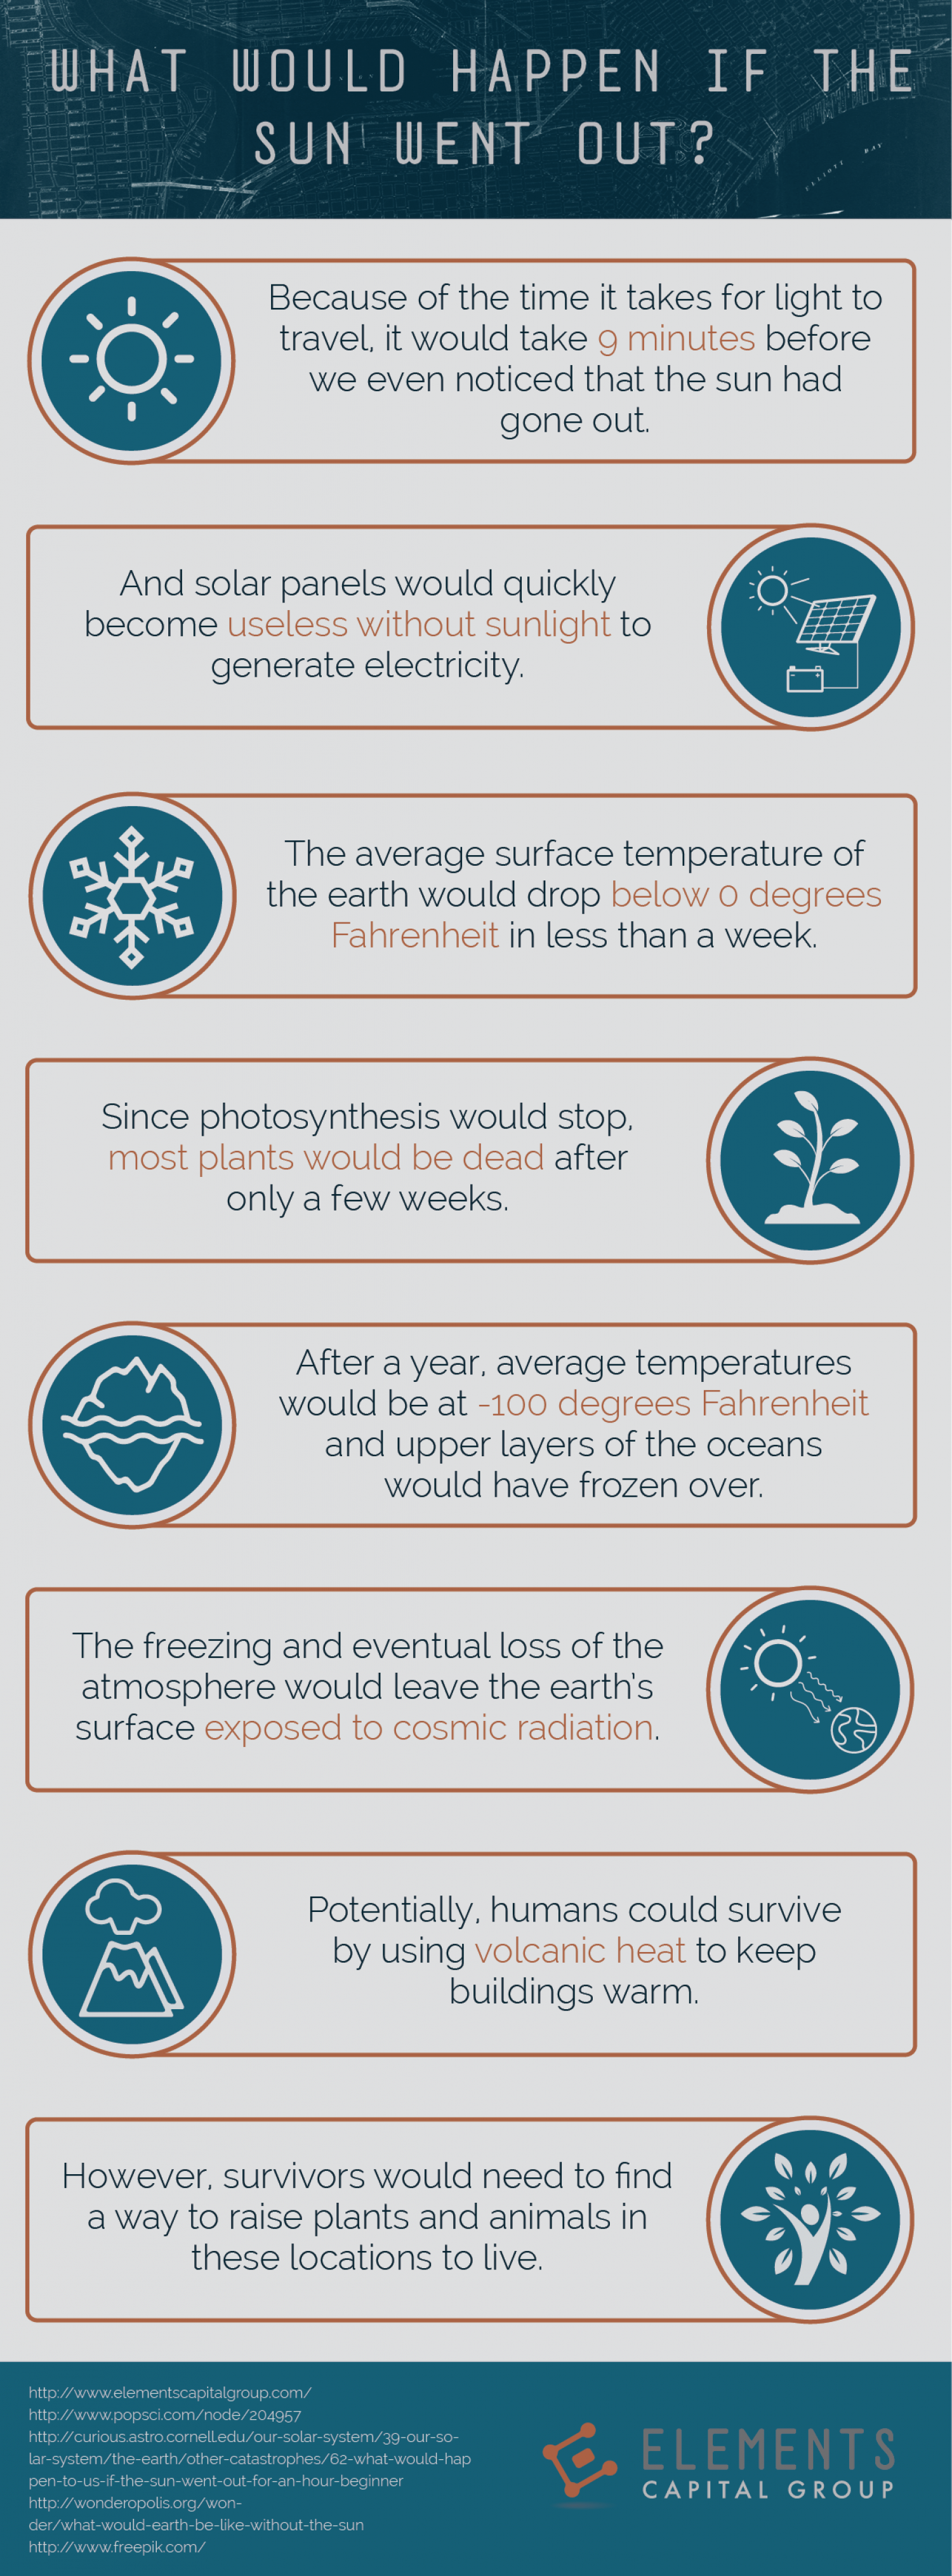 What Would Happen if the Sun Went Out? Infographic